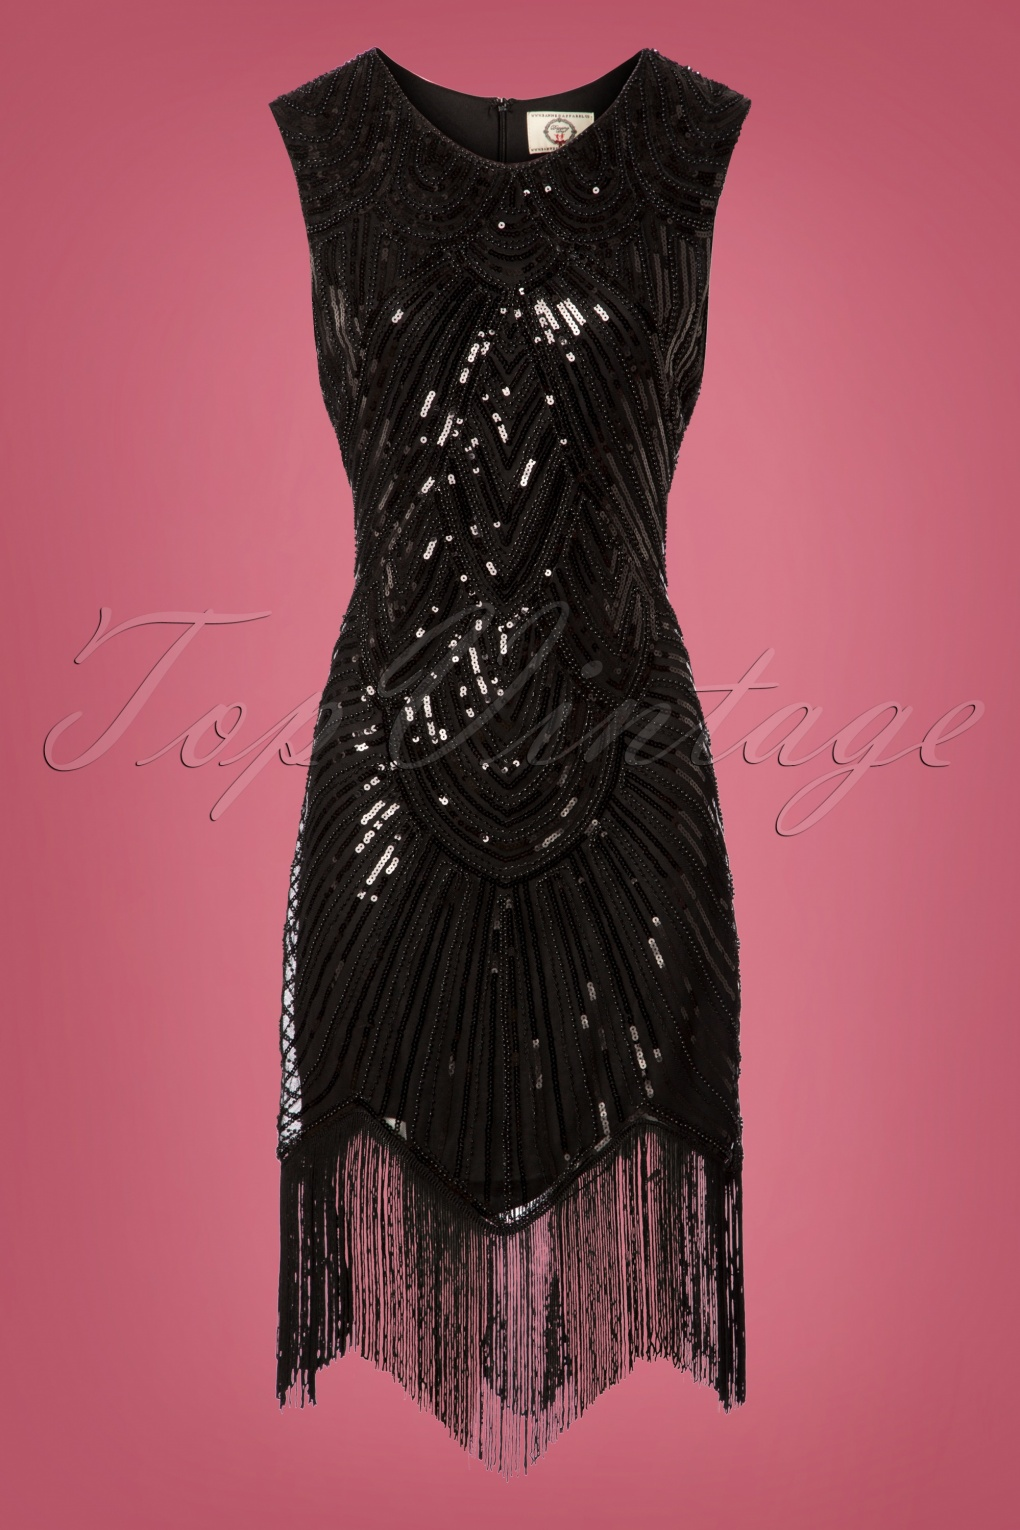 Roaring 20s Costumes- Flapper Costumes, Gangster Costumes 20s The Great Gatsby Dress in Black £61.41 AT vintagedancer.com